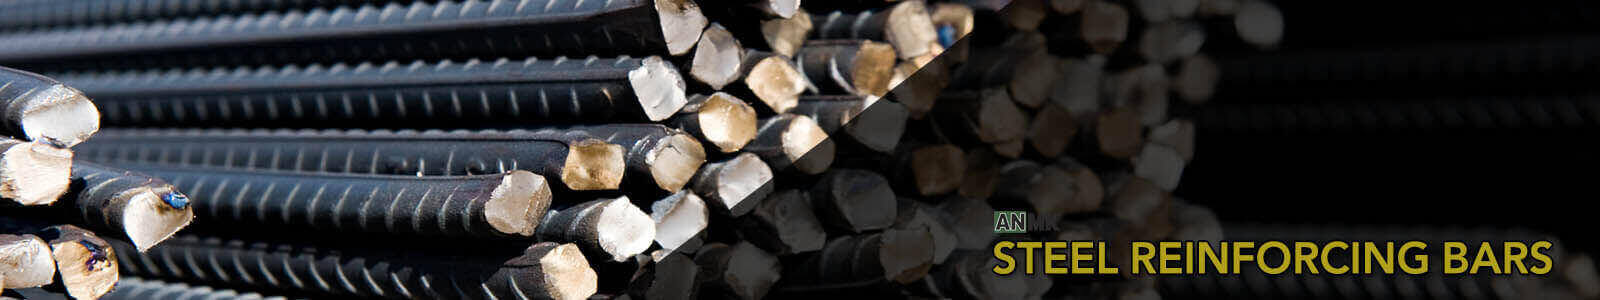 steel reinforcing bars - anmk steel